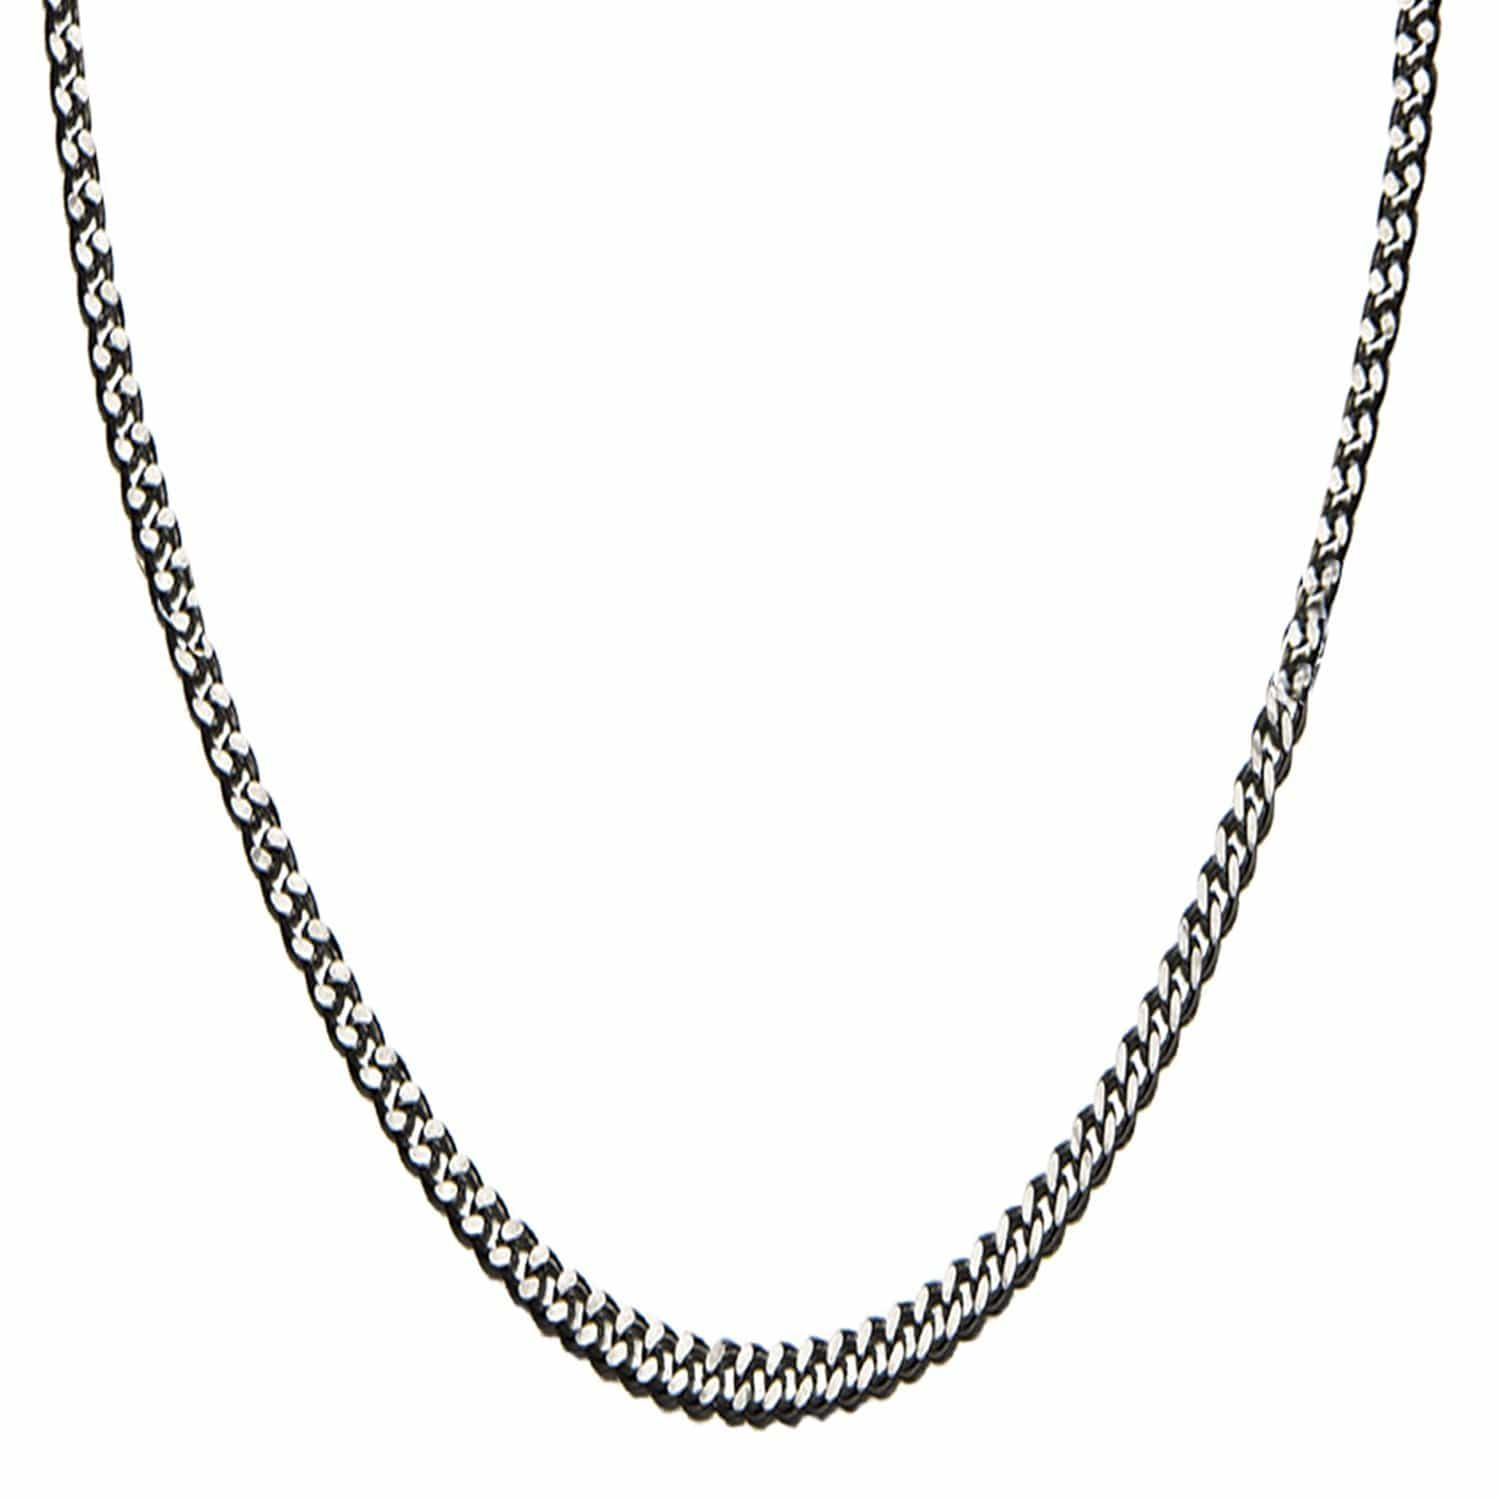 Silver Stainless Steel 3.5 mm Two-Face Diamond Cut Design Chain